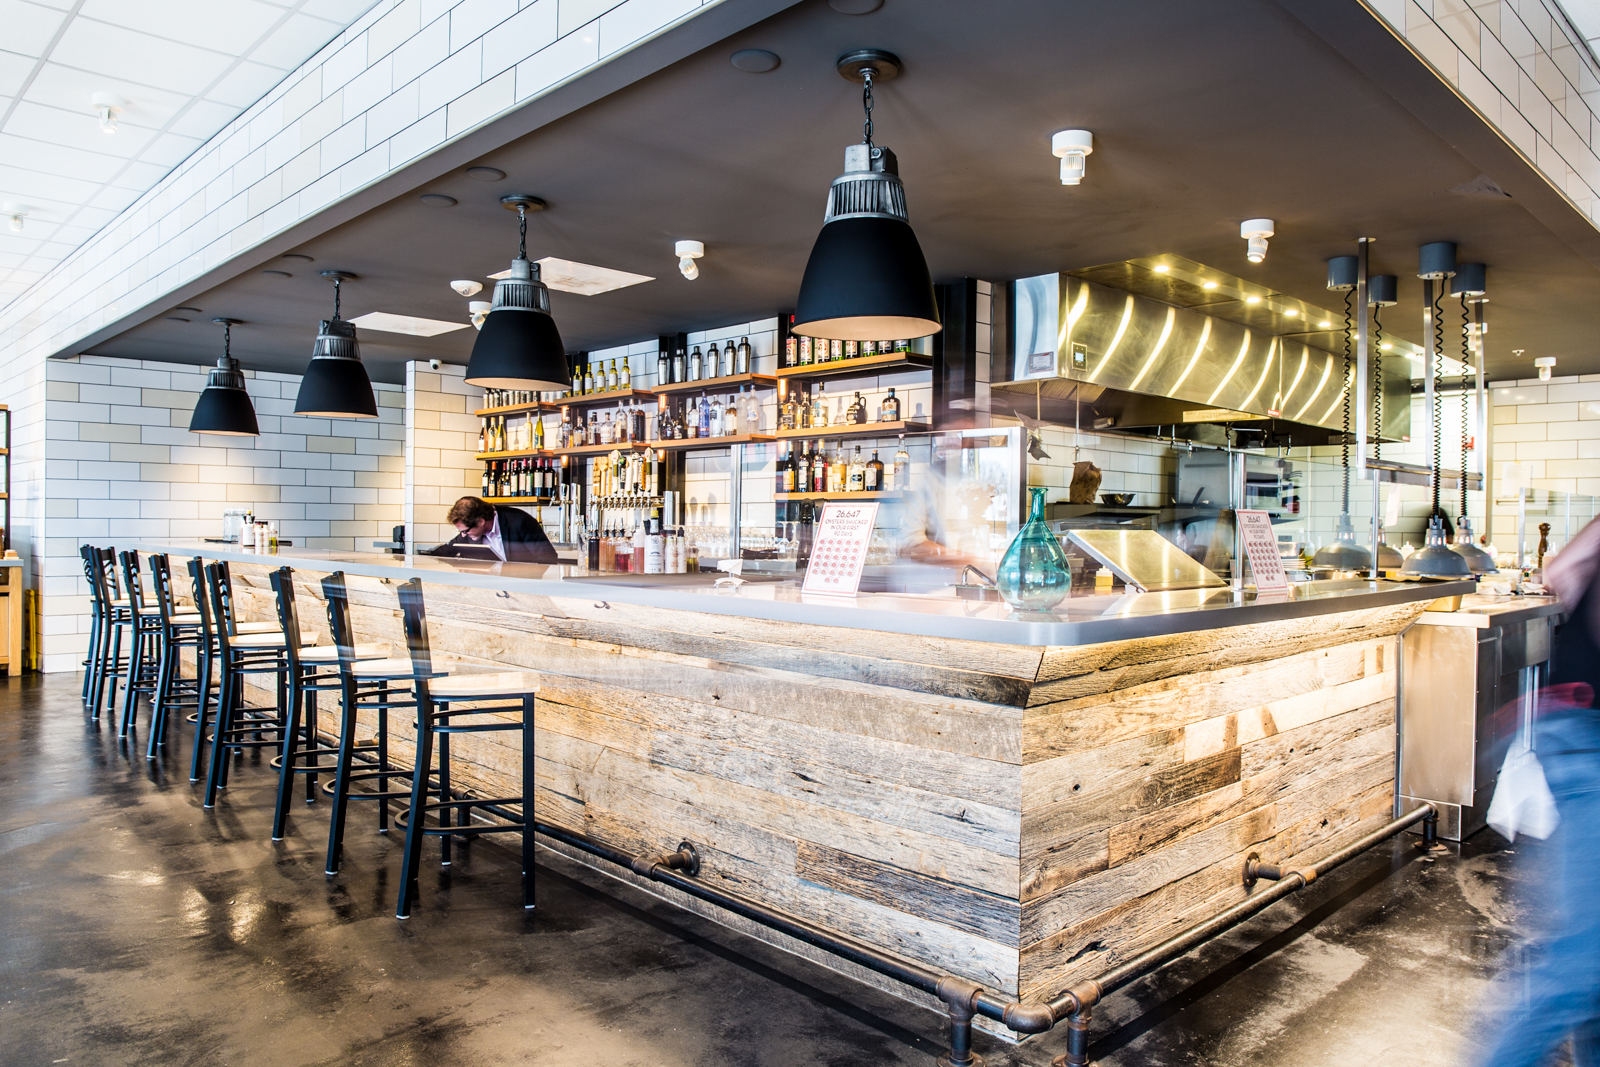 salt box oyster co. - @therealjustinc-1000.jpg